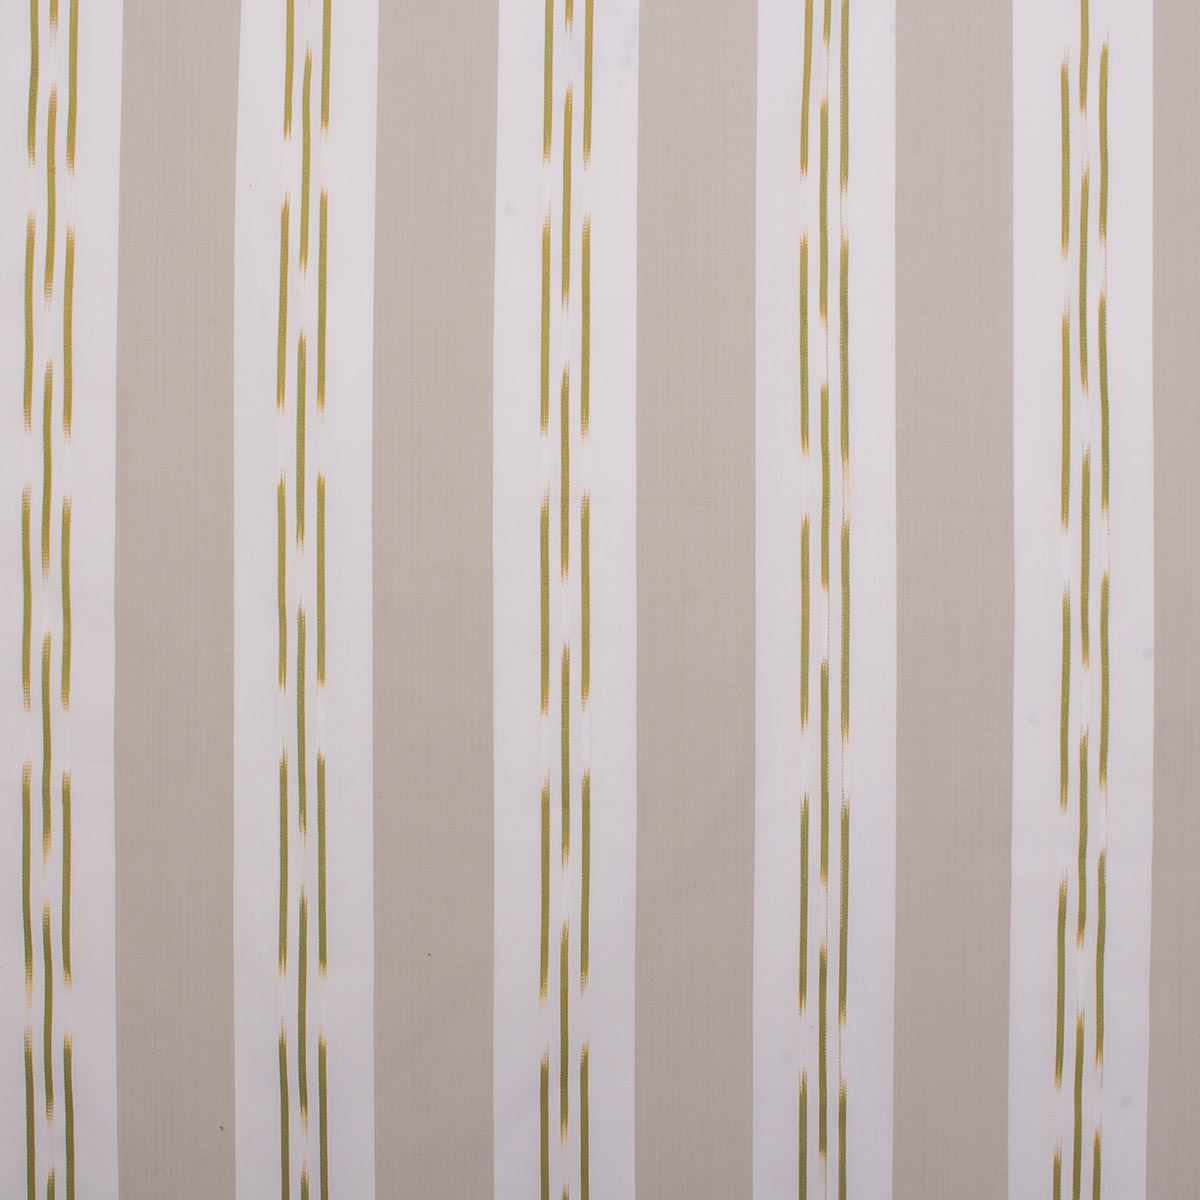 Woven Vertical Stripe Pattern Lightweight Olive Green Curtain Fabric Upholstery Ebay